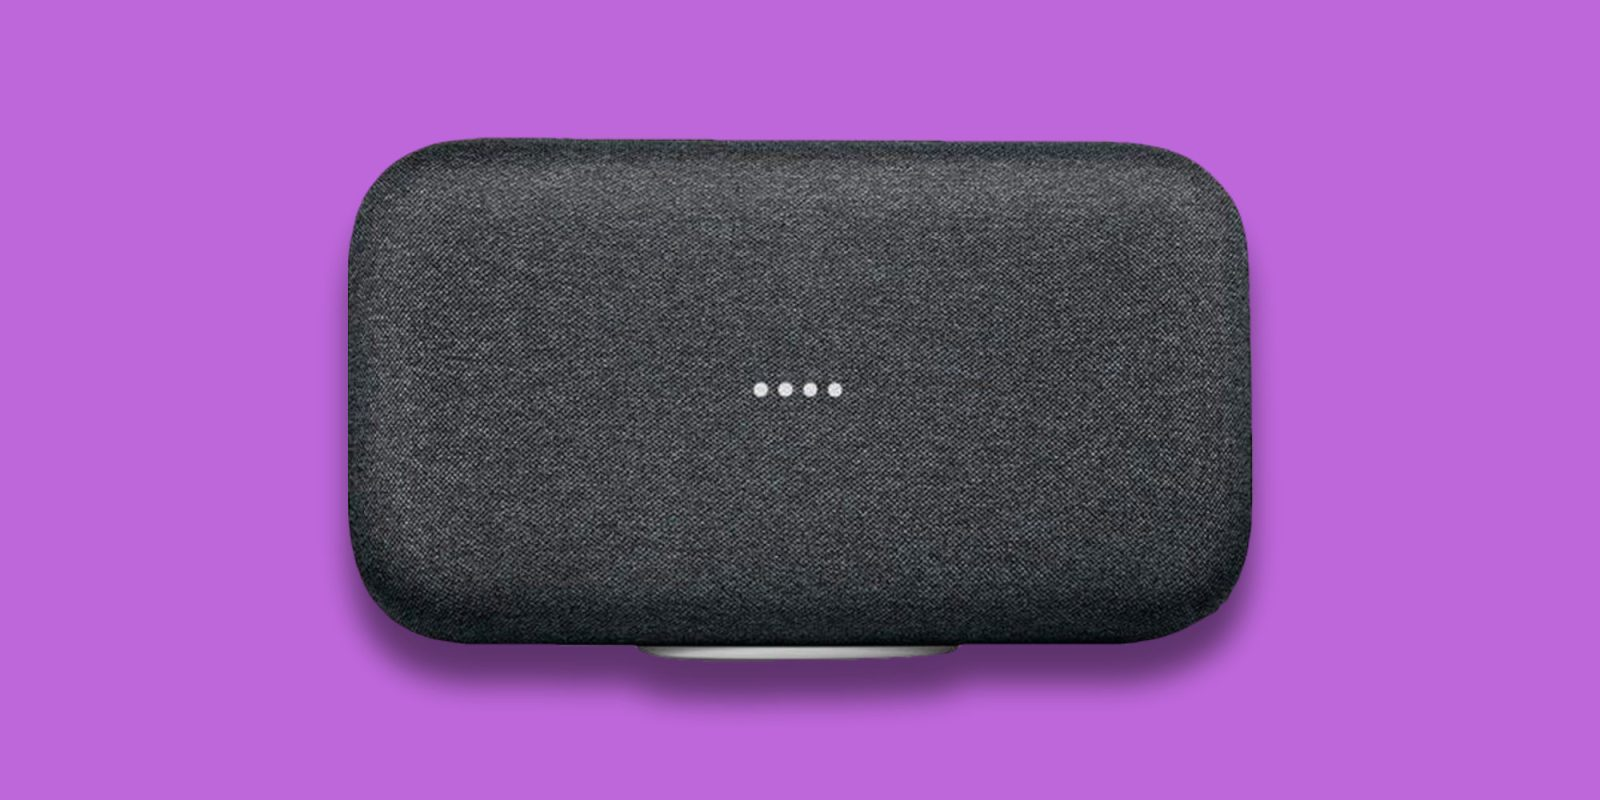 Shave $60 off Google's powerful and capable Home Max: $239